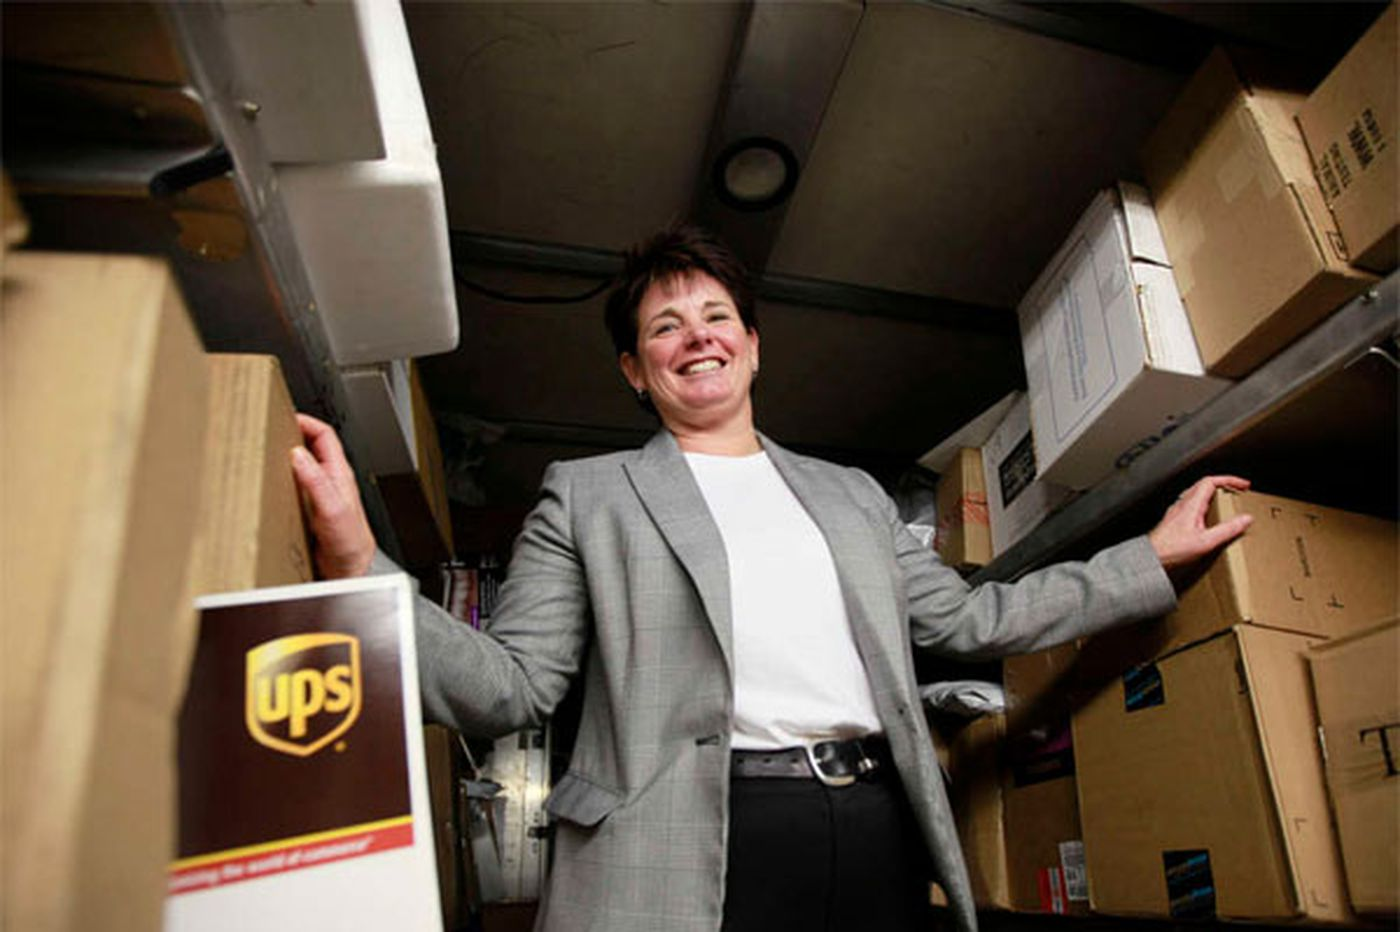 A calm hand at the helm on UPS's busiest day